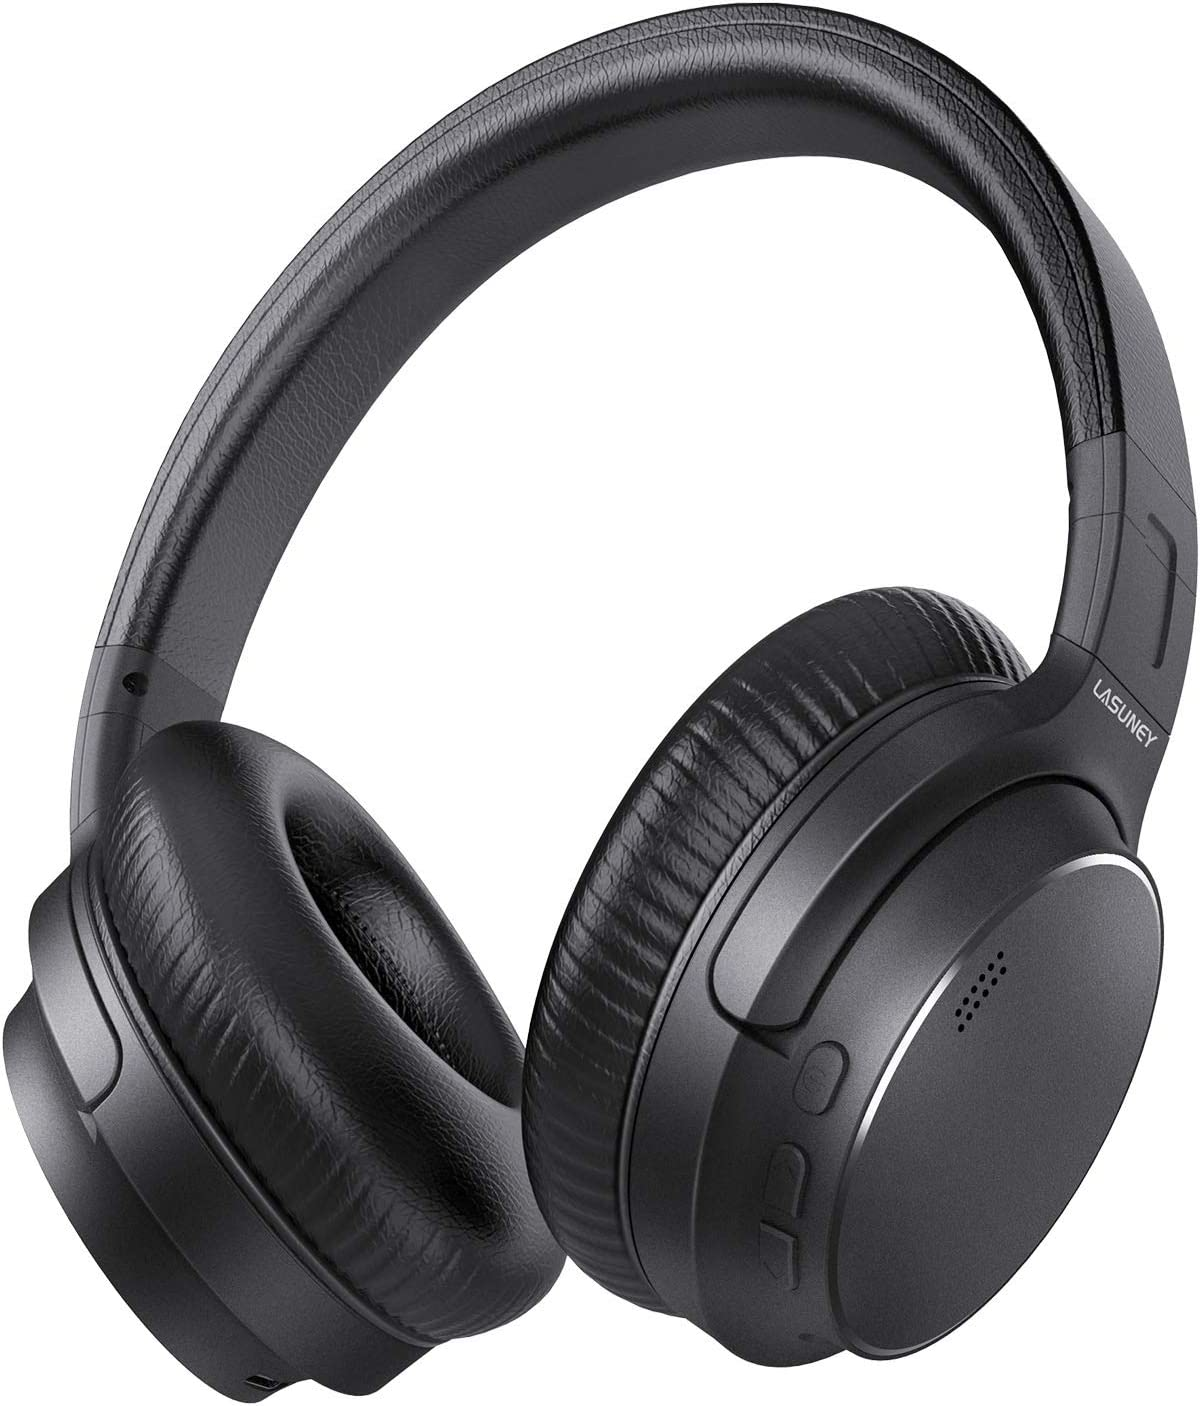 Lasuney S8 Hybrid Active Noise Cancelling Headphones APT-X CVC8.0 48H Music Playtime HiFi Audio Sound Wireless Bluetooth Headphones with Microphone Type-c Fast Charging Over Ear Headset, Black